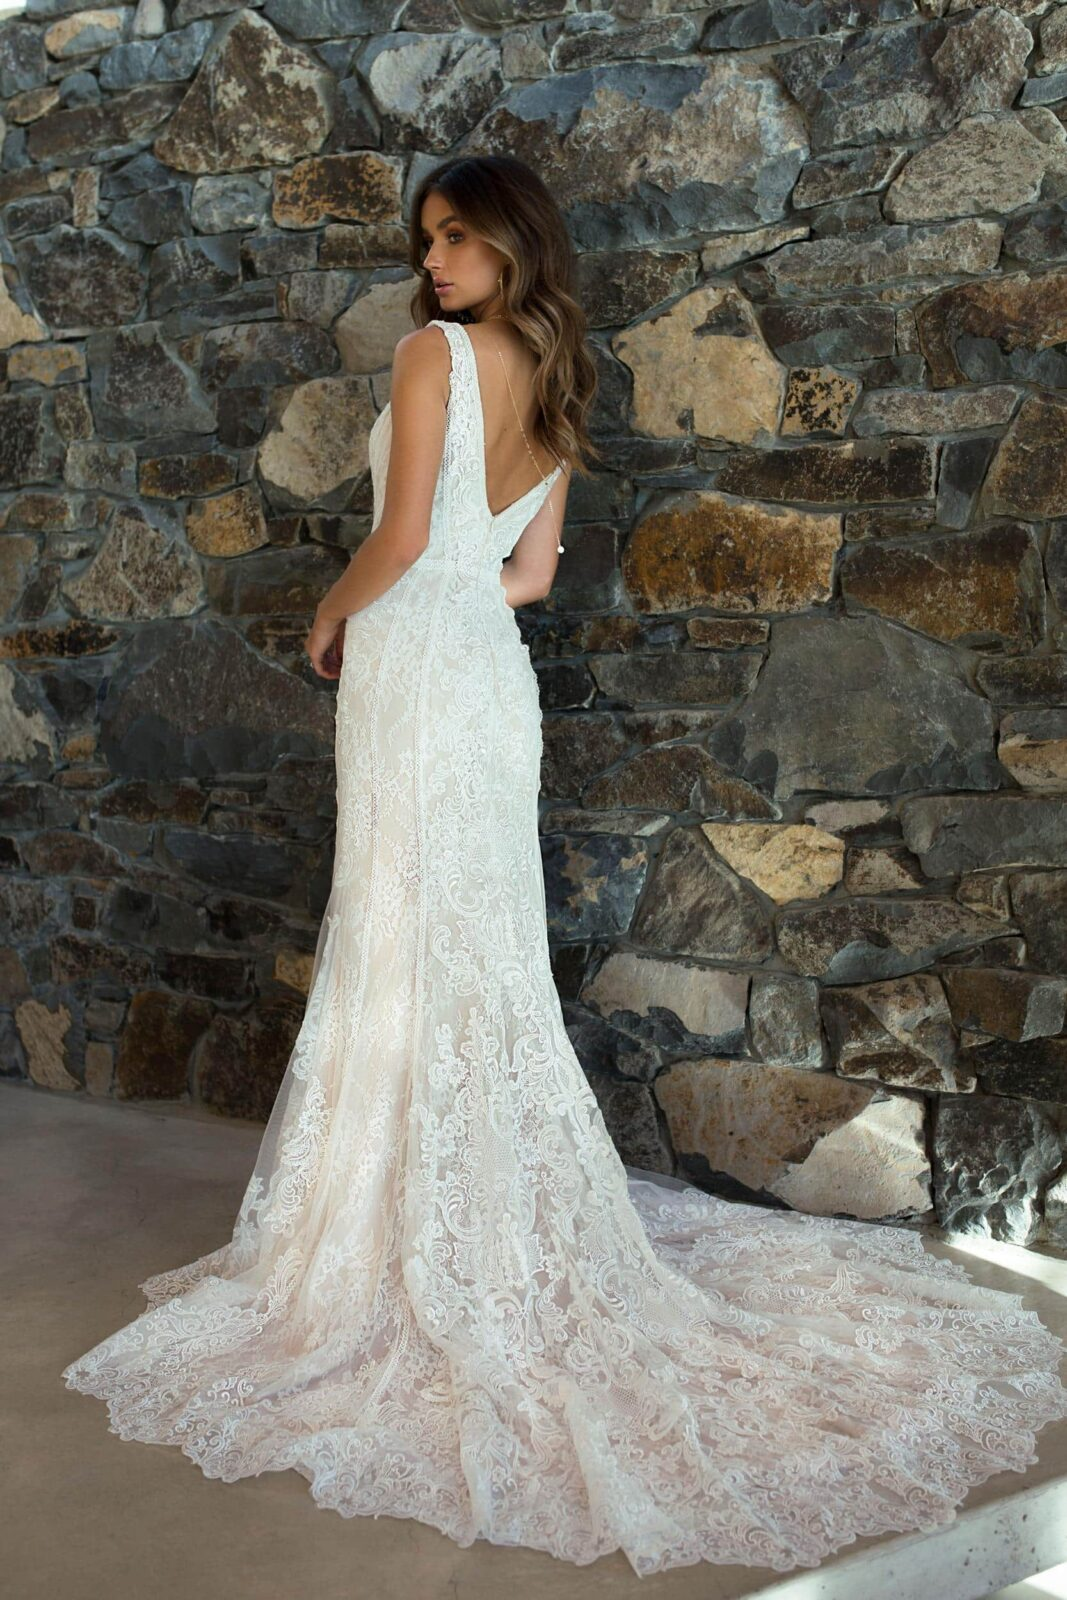 RAYA-ML6818-FITTED-LACE-GOWN-WITH-V-NECK-STRAPS-AND-FULL-LACE-TRAIN-WEDDING-DRESS-MADI-LANE-BRIDAL8-1667x2500